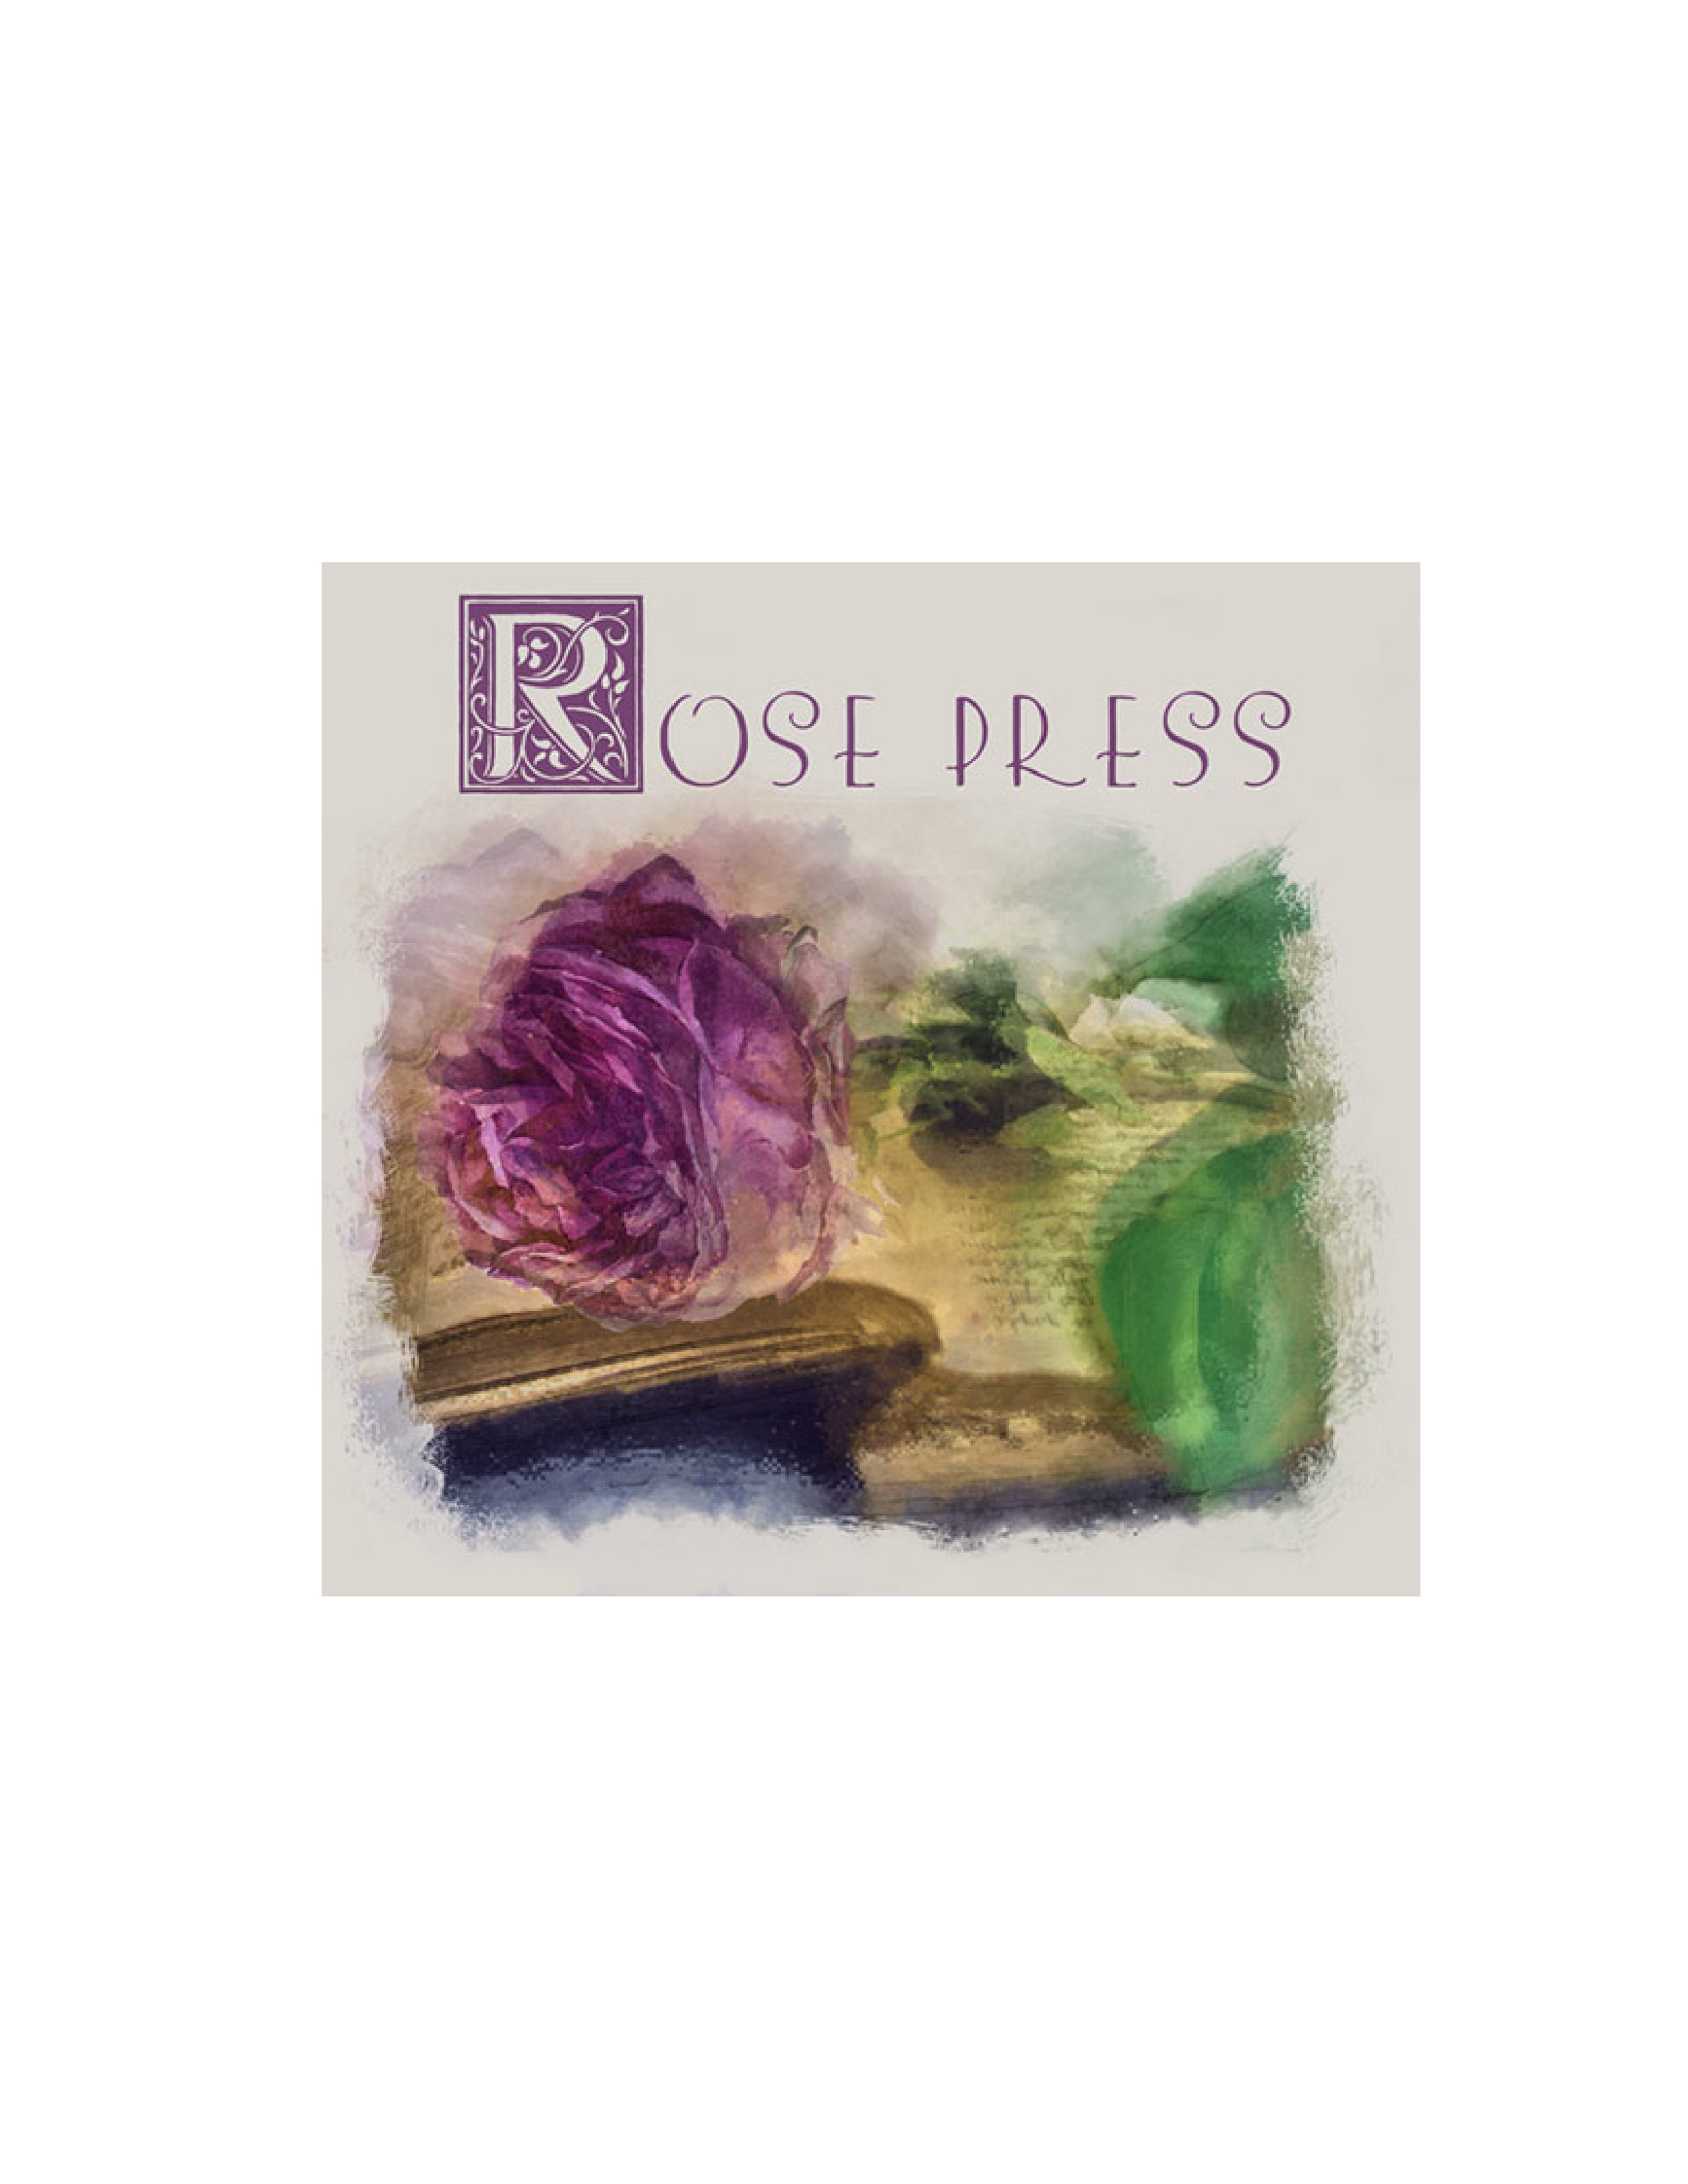 And do check out - ROSE PRESS ~ Books to bring you home to yourself. See the Rose Press collection